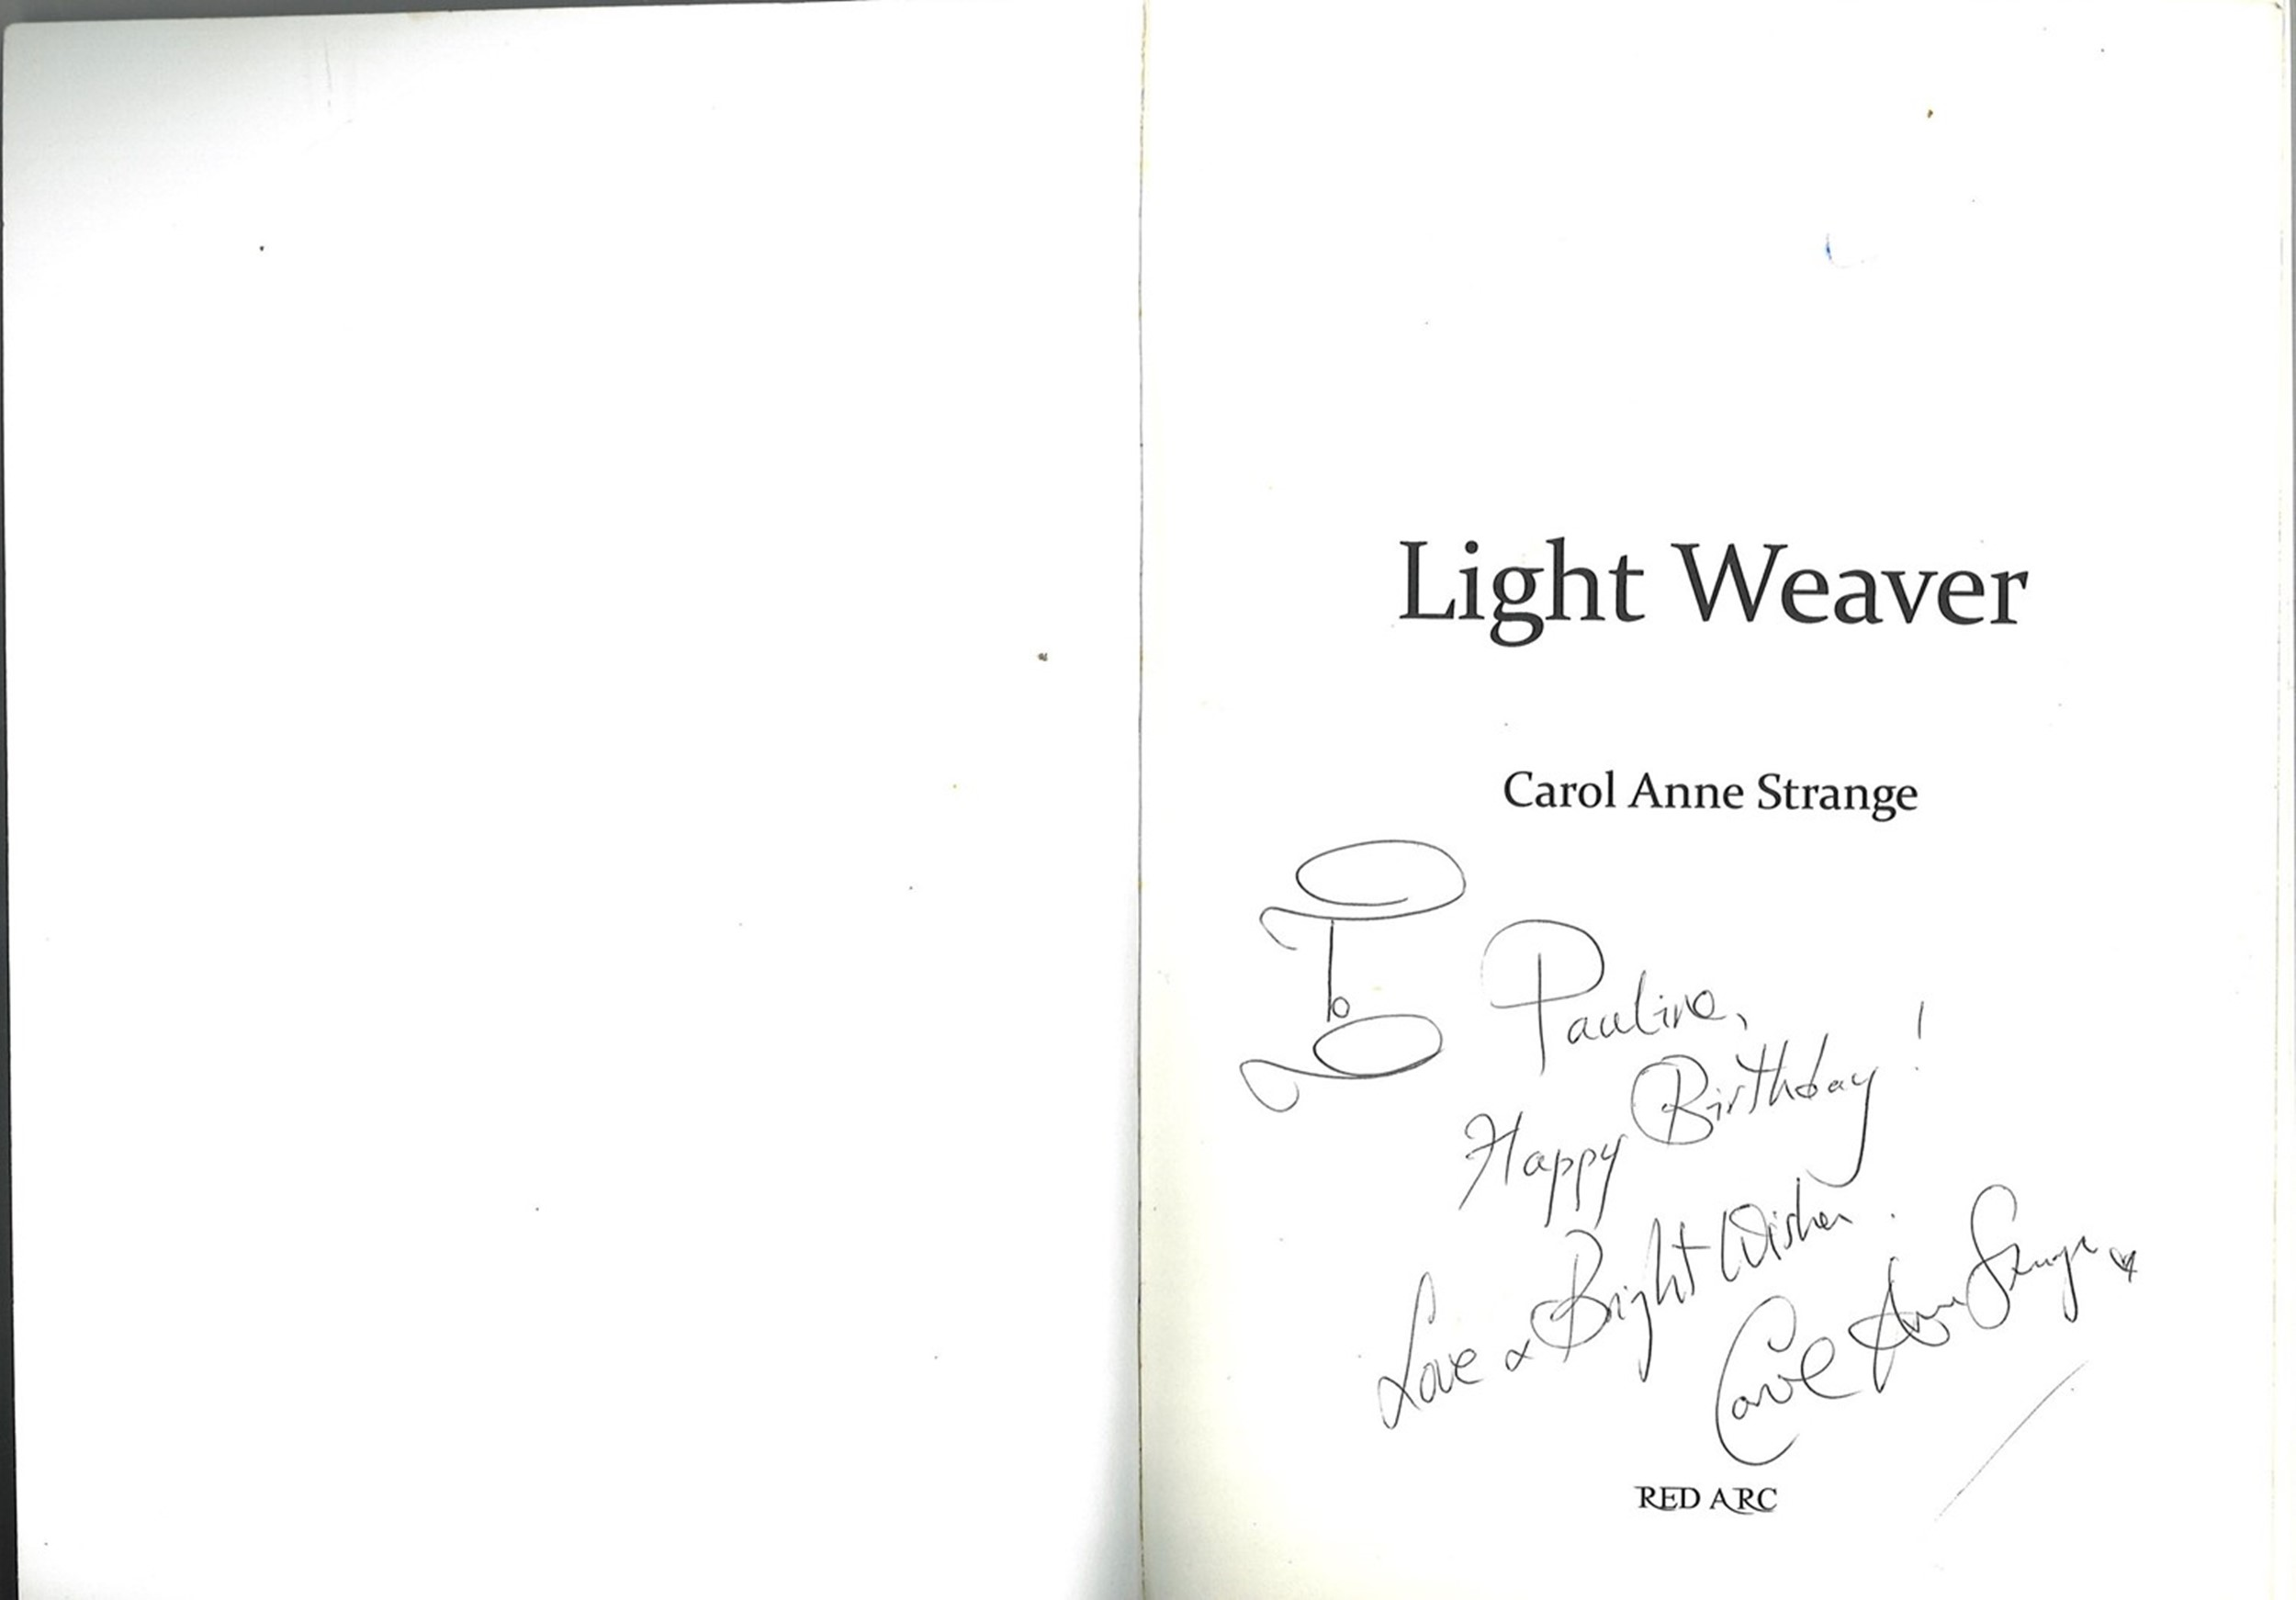 5 Signed Books 3 Paperback and 2 Hardback Books, Three Hours, Silver Tide, Light Weaver, Muddy - Image 2 of 5